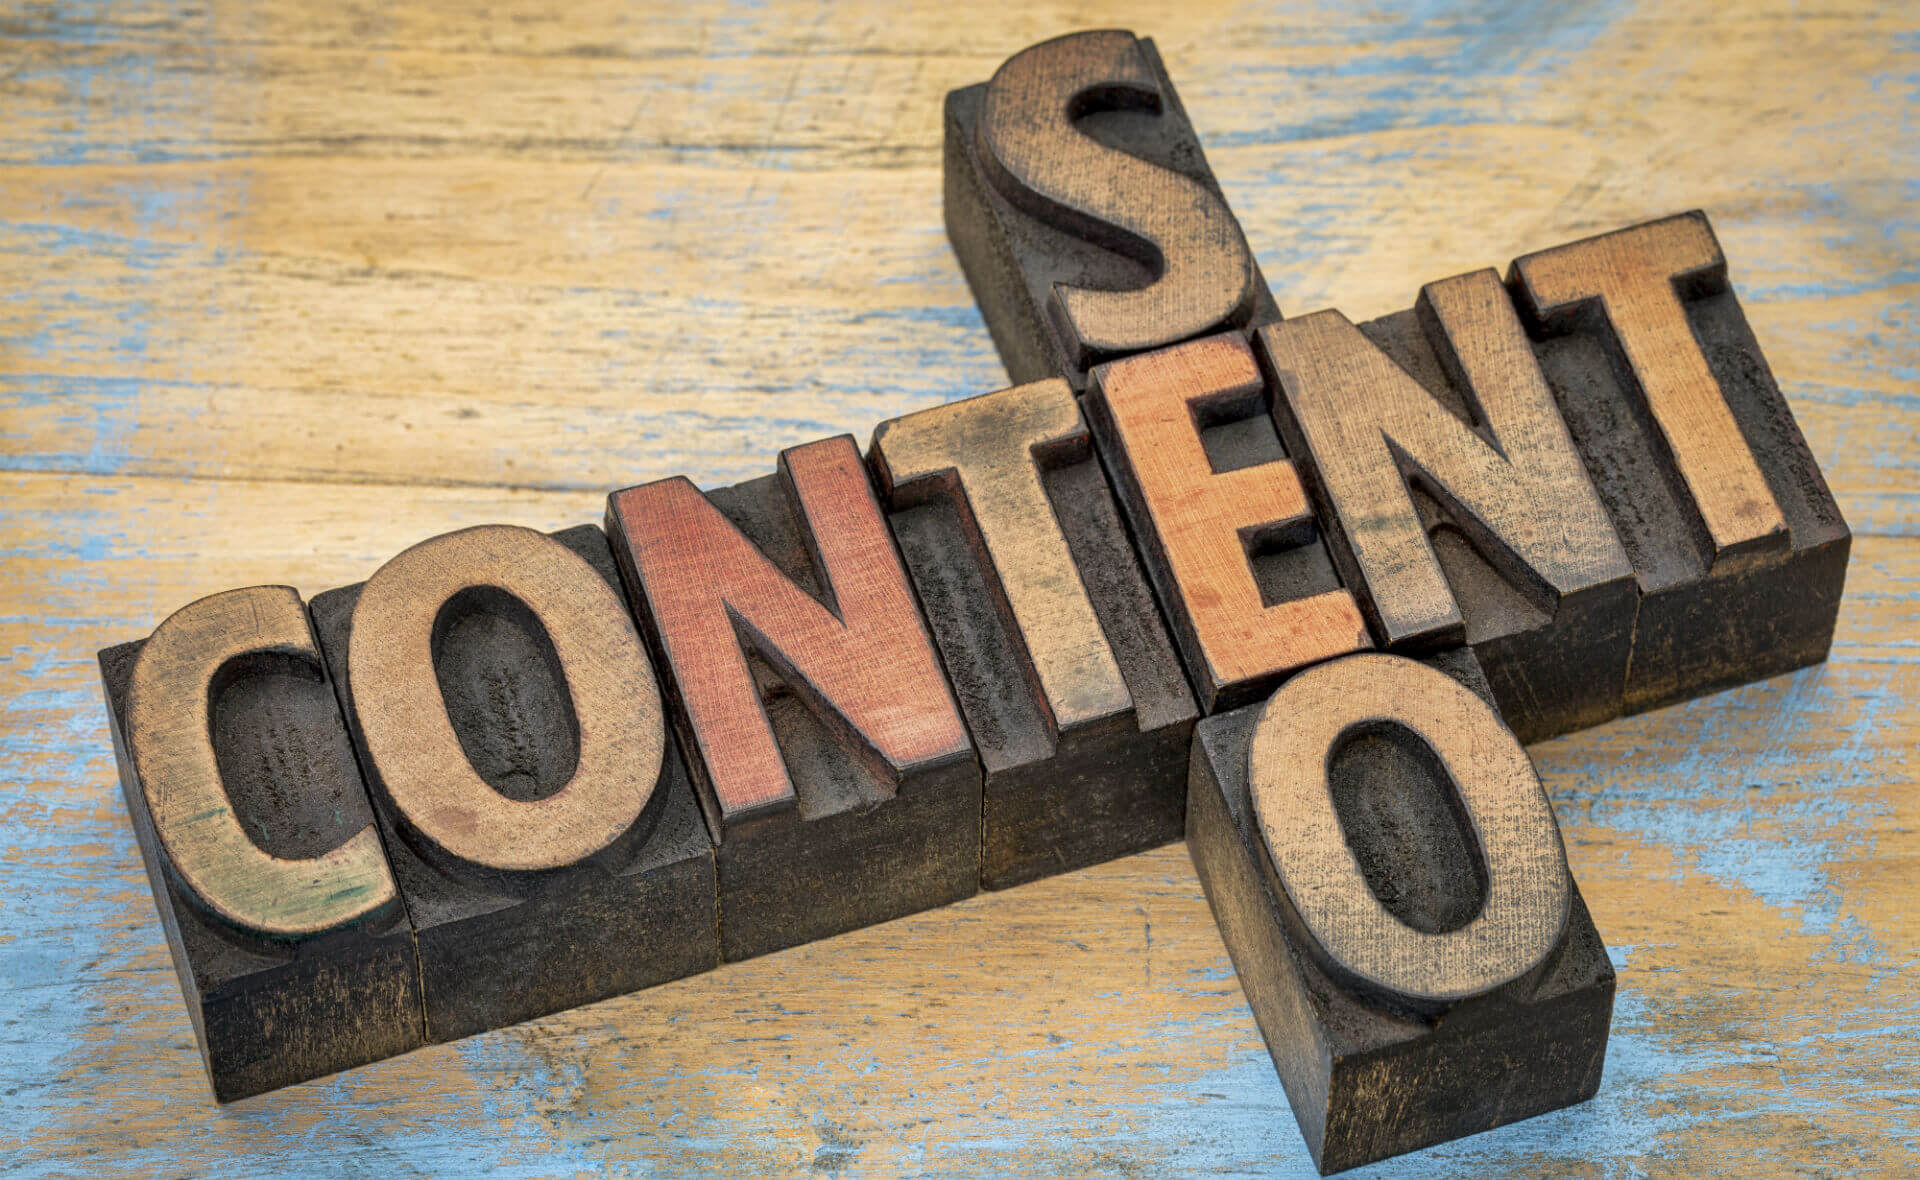 Best Types of SEO Content